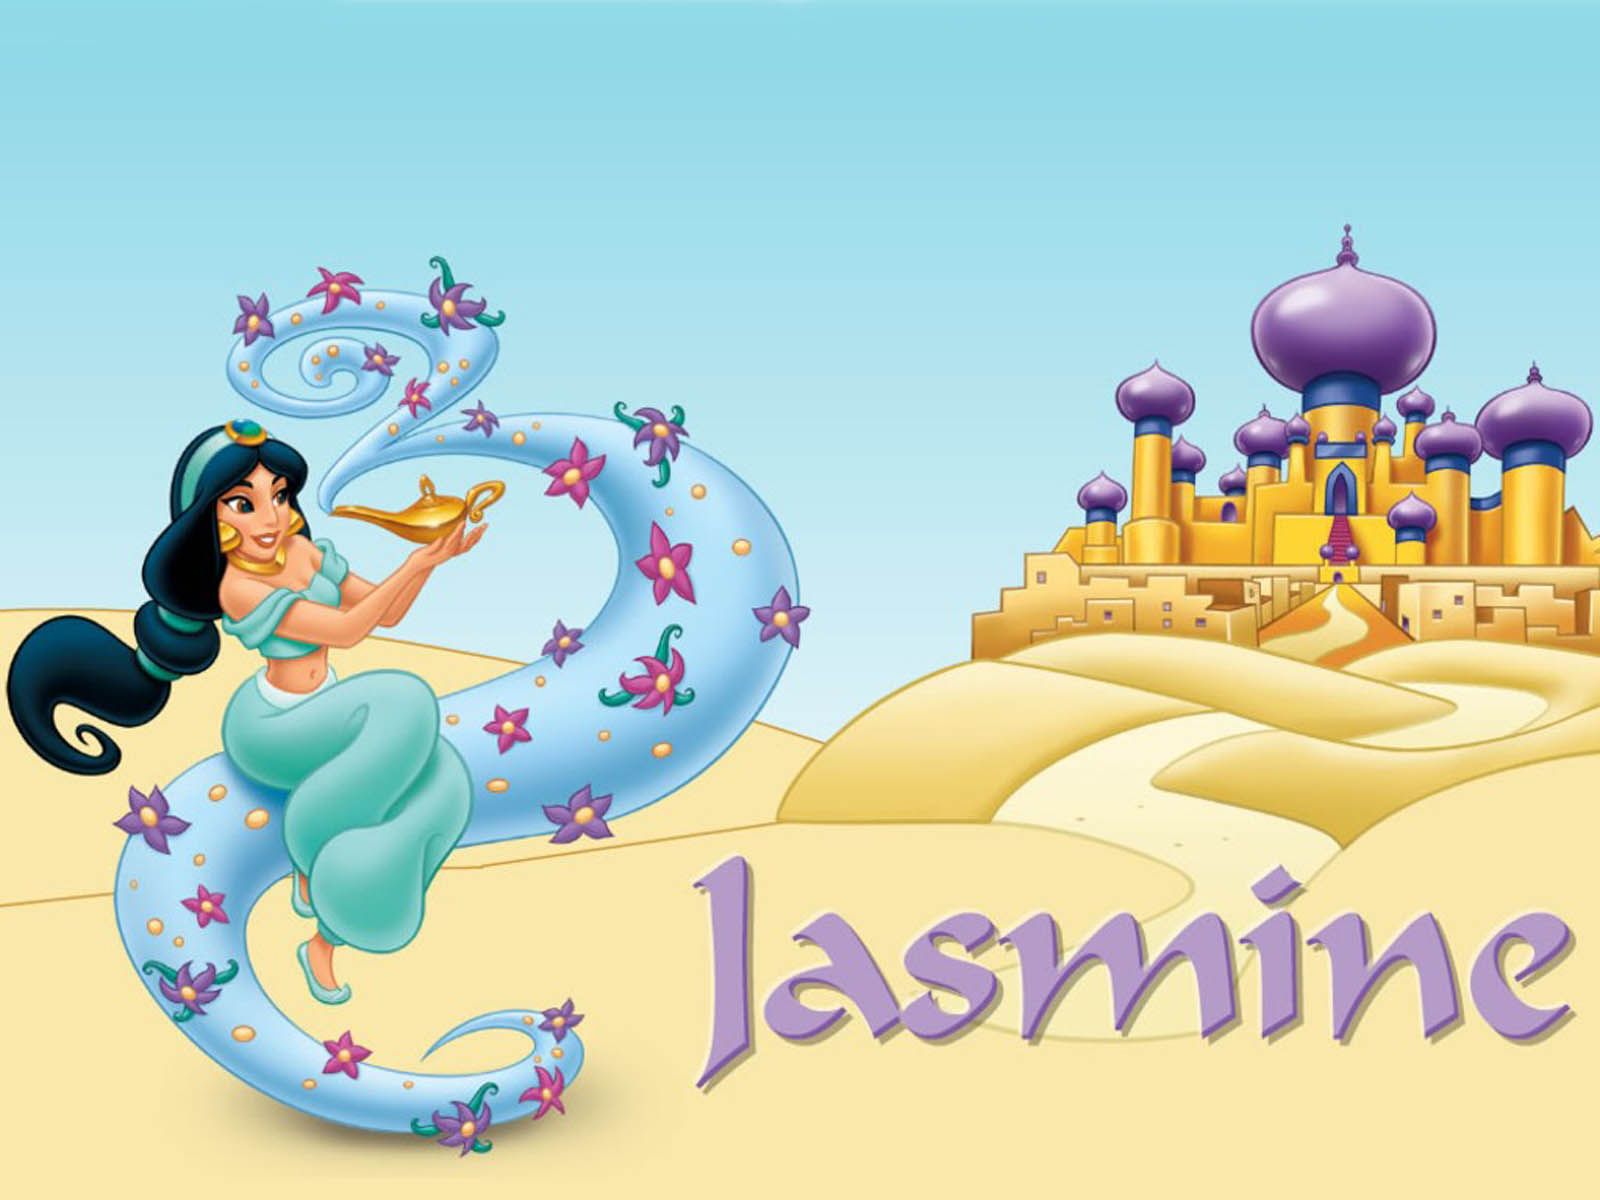 Jasmine Wallpapers DisneyPrincess Jasmine Desktop Wallpapers Disney 1600x1200